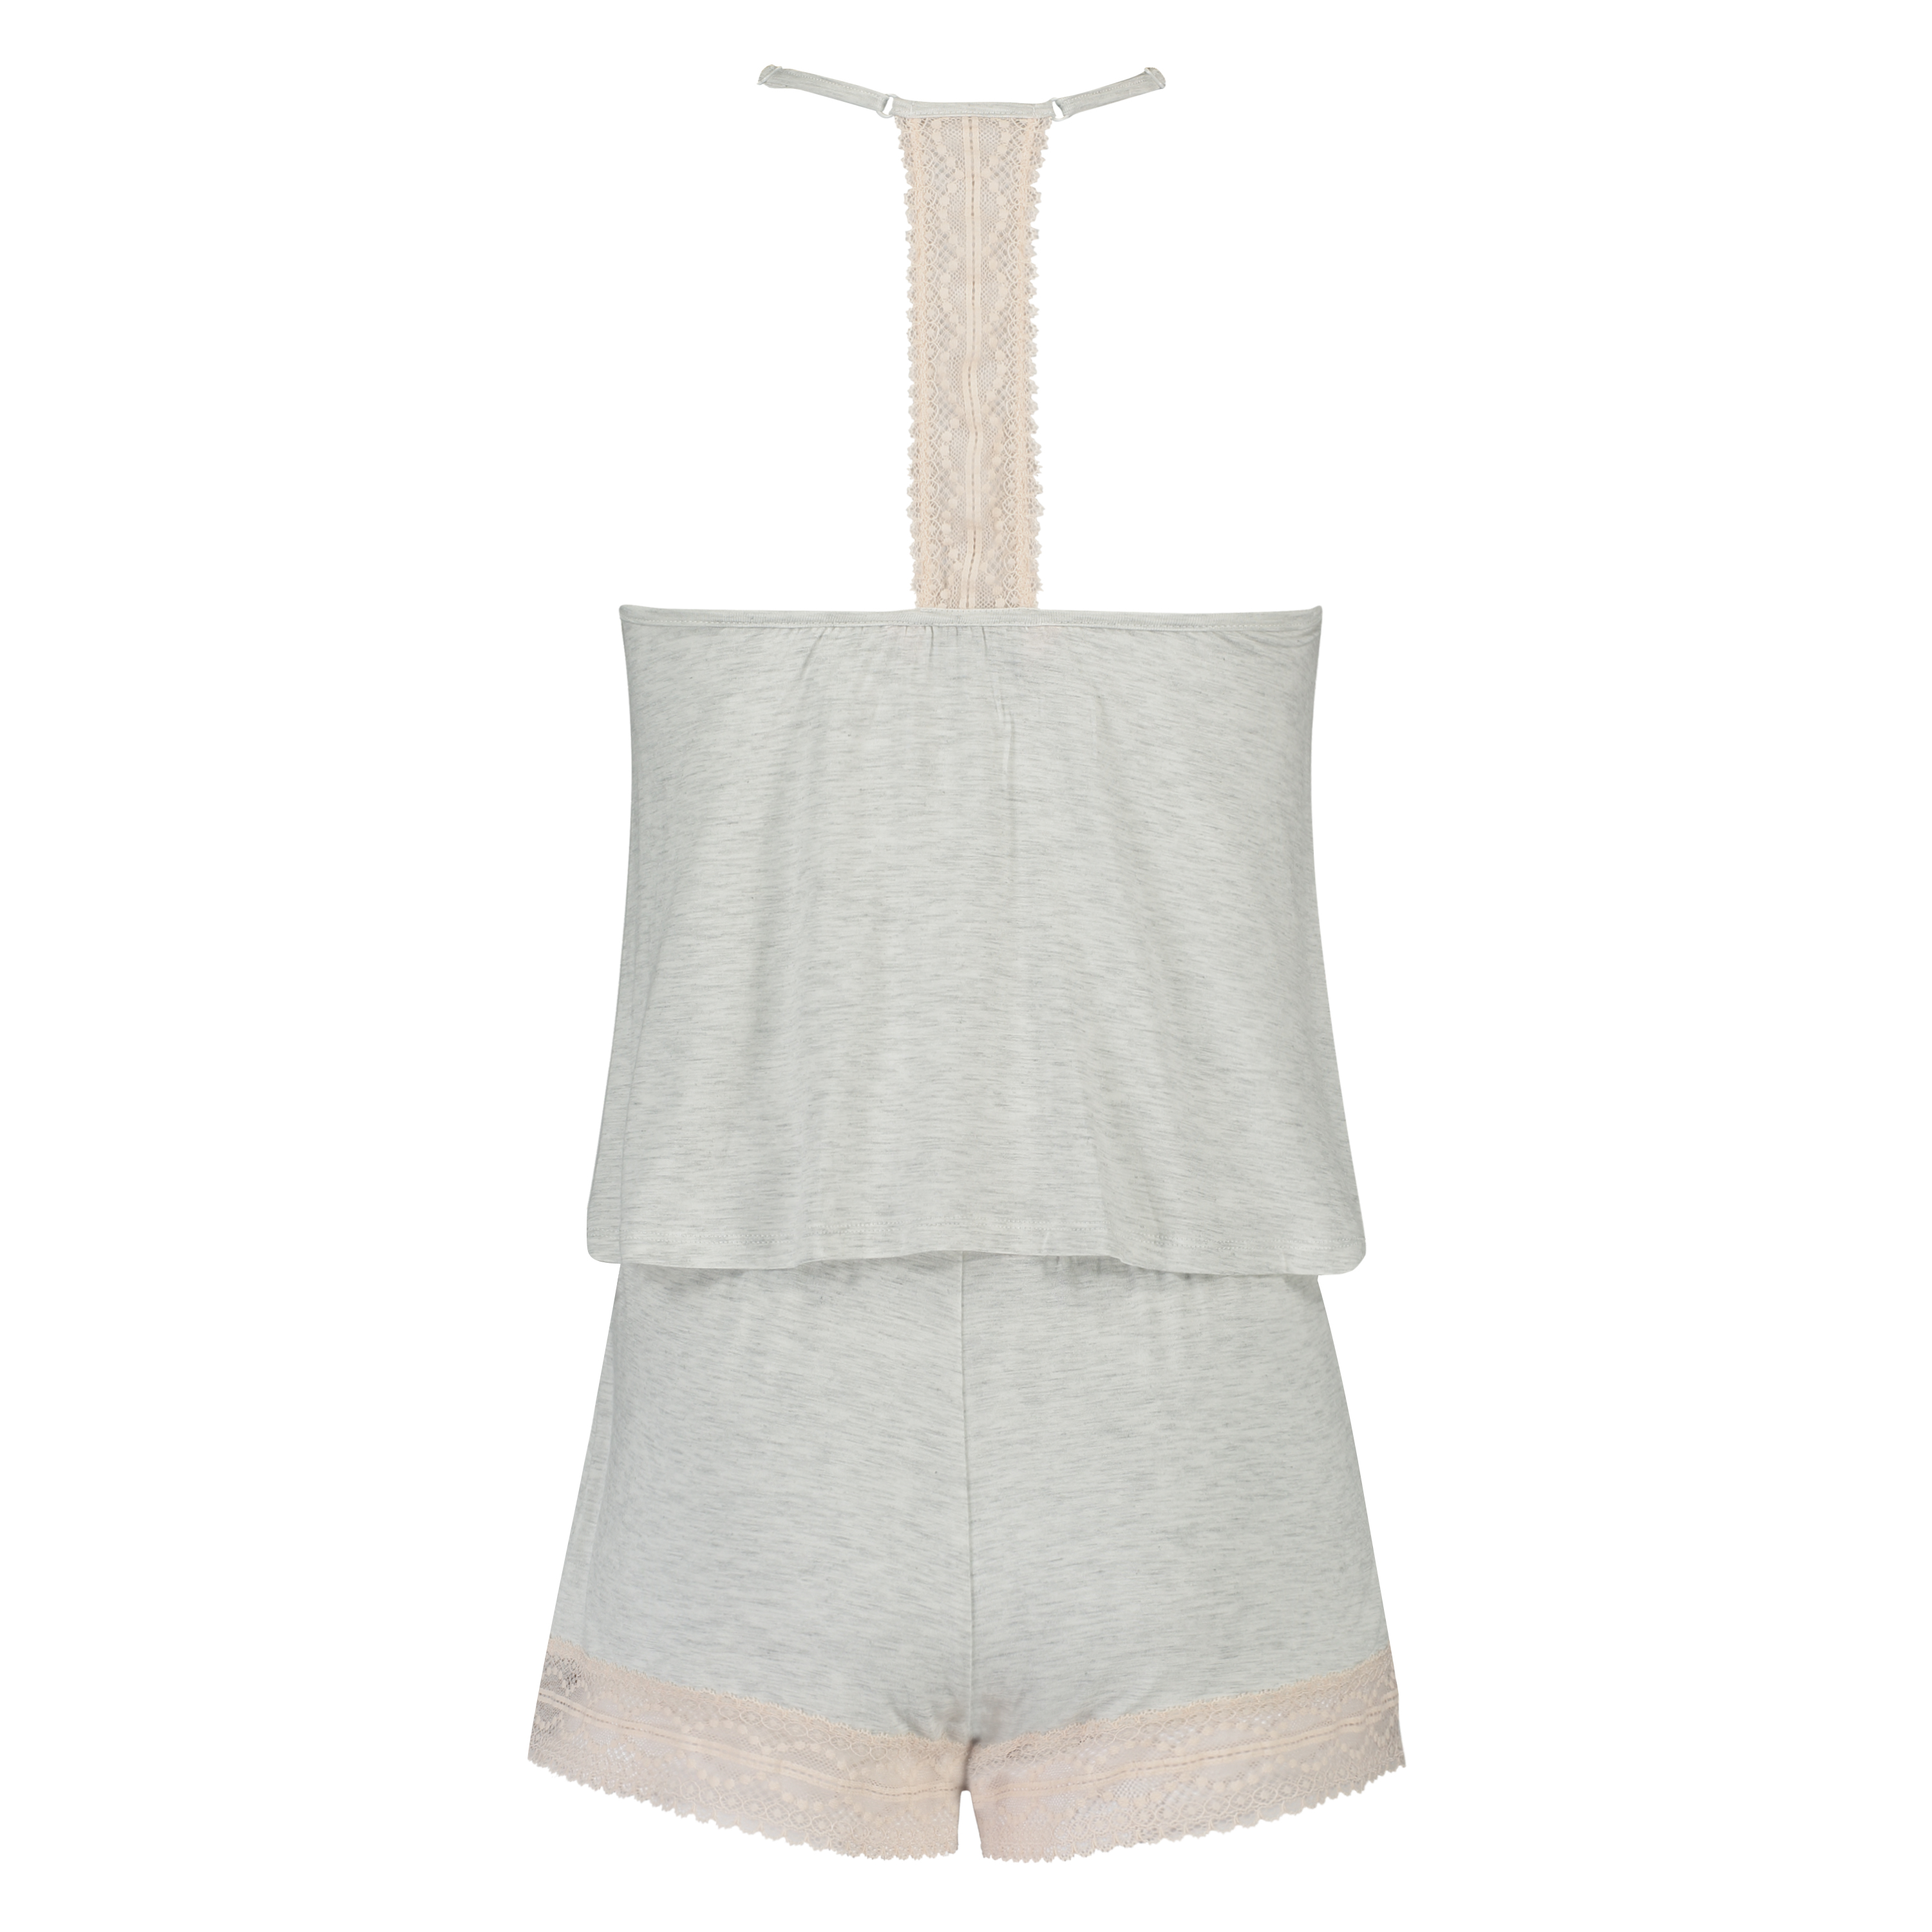 Pyjamaset Short, Grau, main